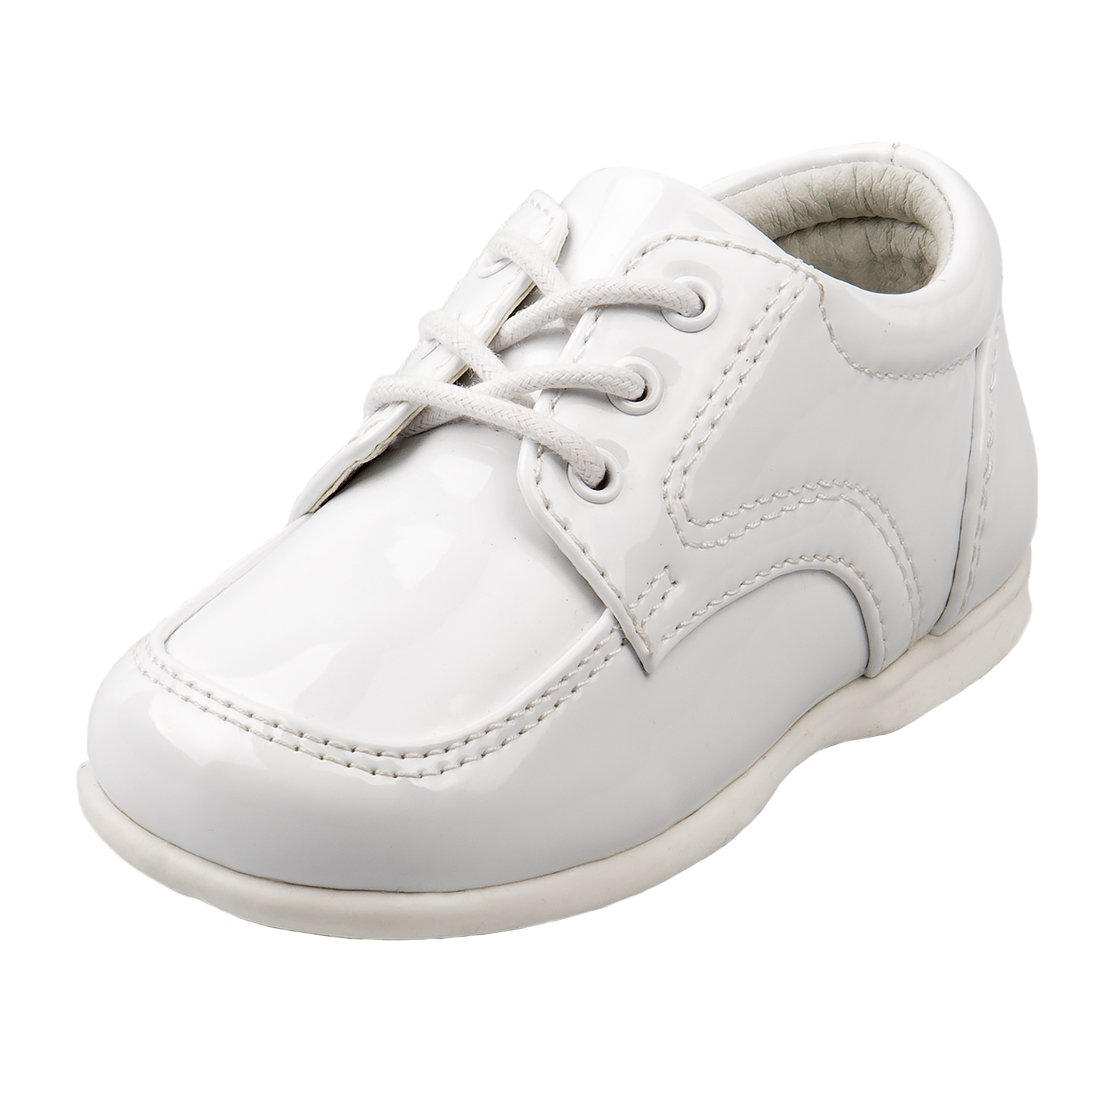 5a44cbe19339 Josmo Baby Boy s First Steps Walking Dress Shoe (Infant